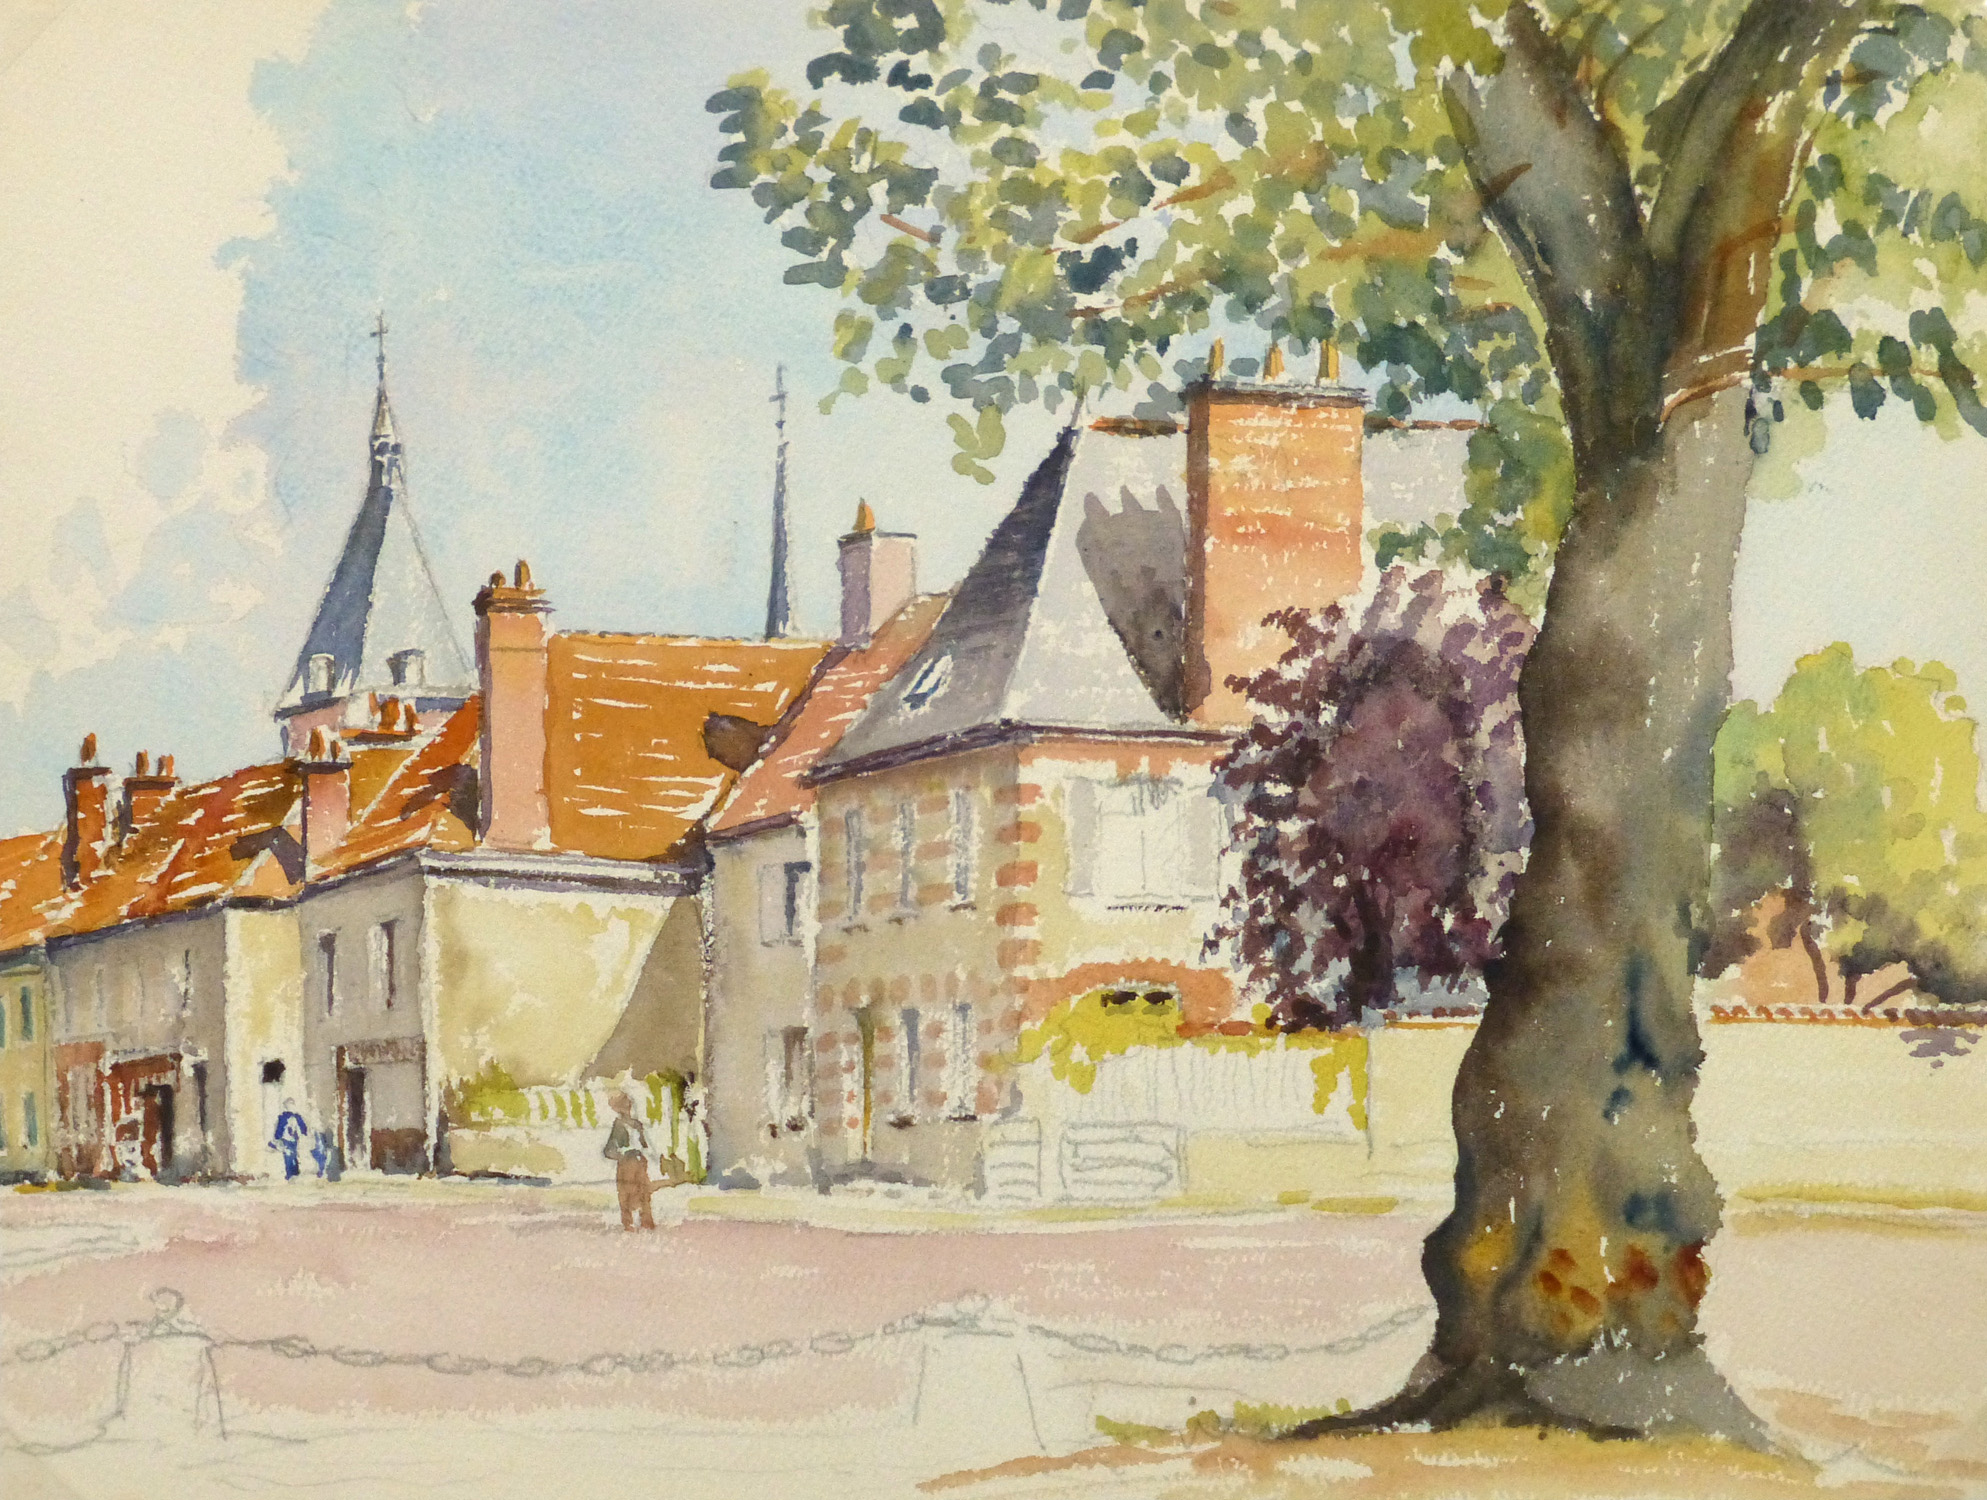 Watercolor Landscape - French Country Village - main-10105M